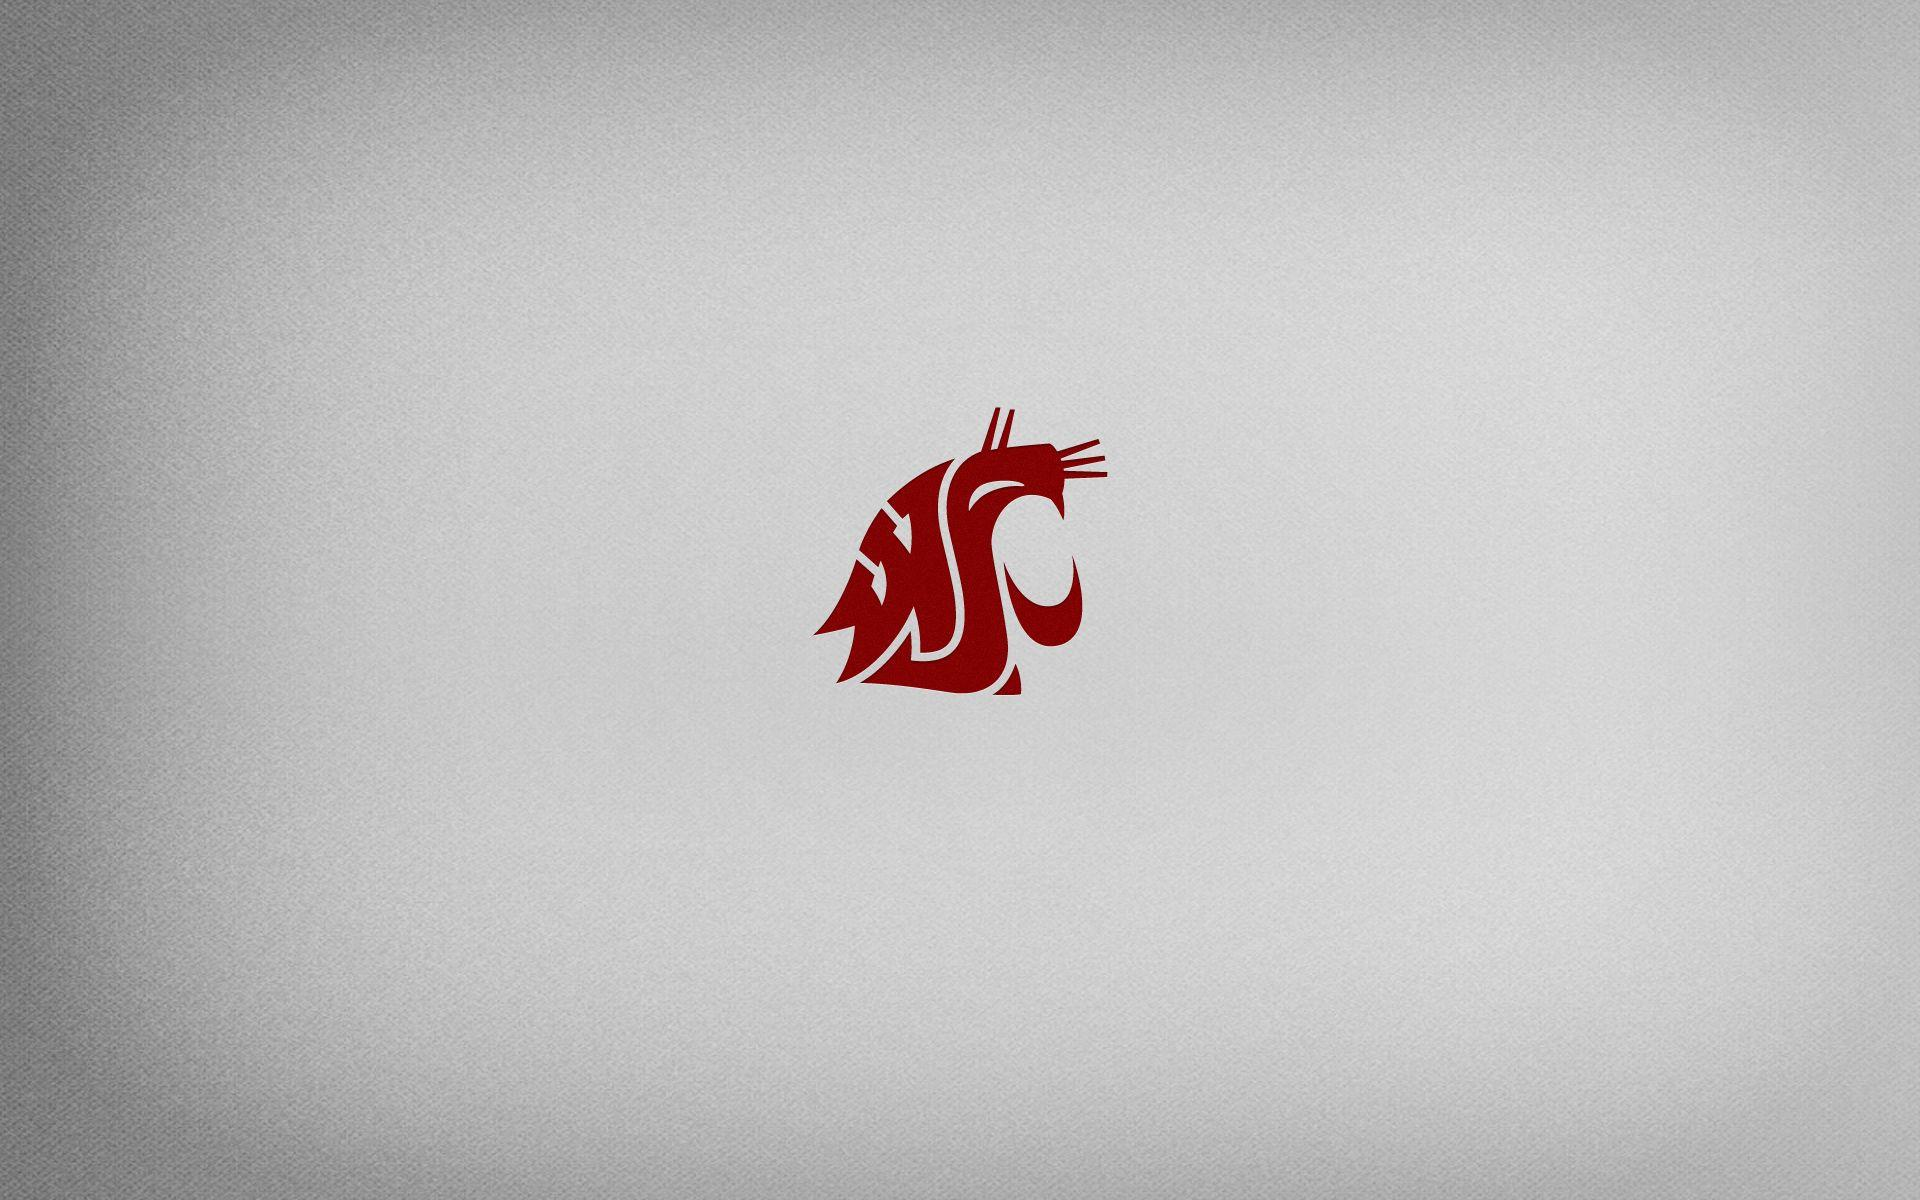 Washington State Cougars Wallpaper #1 | Washington State Cougars .